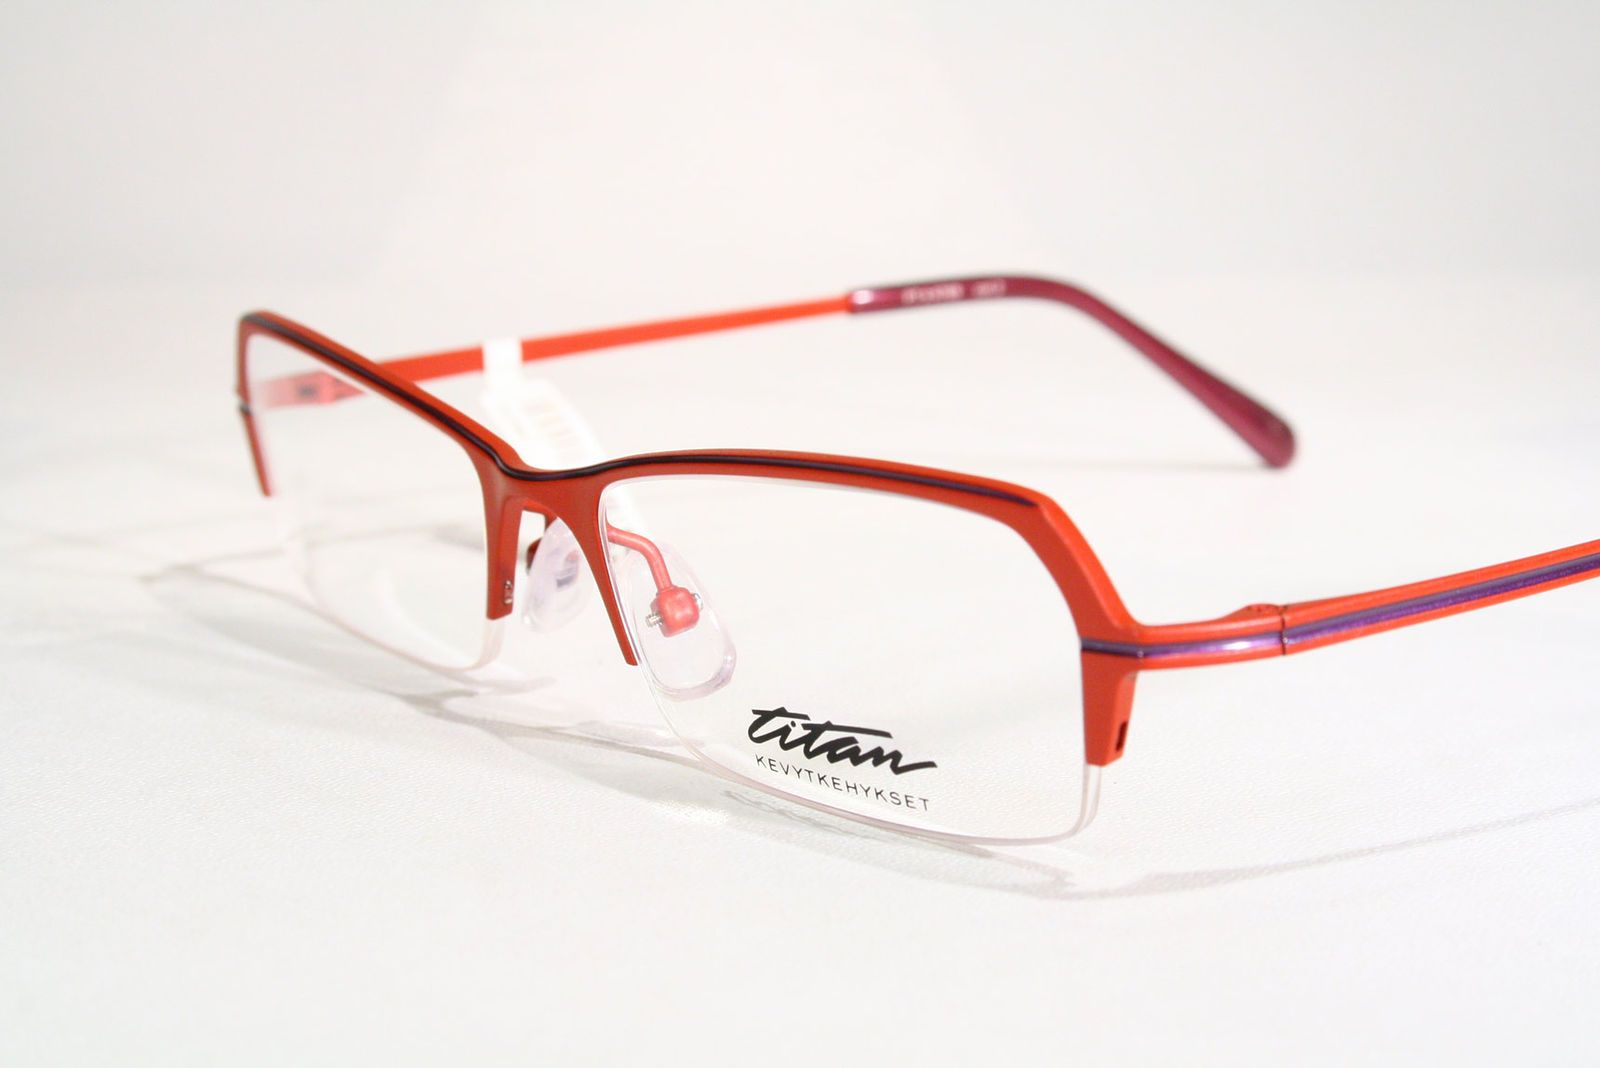 ad9cc2c871c4 Finnish Design Half Rimless Titanium Red Violet Optical Eyeglass Frames  Glasses   eBay (RipVanW)